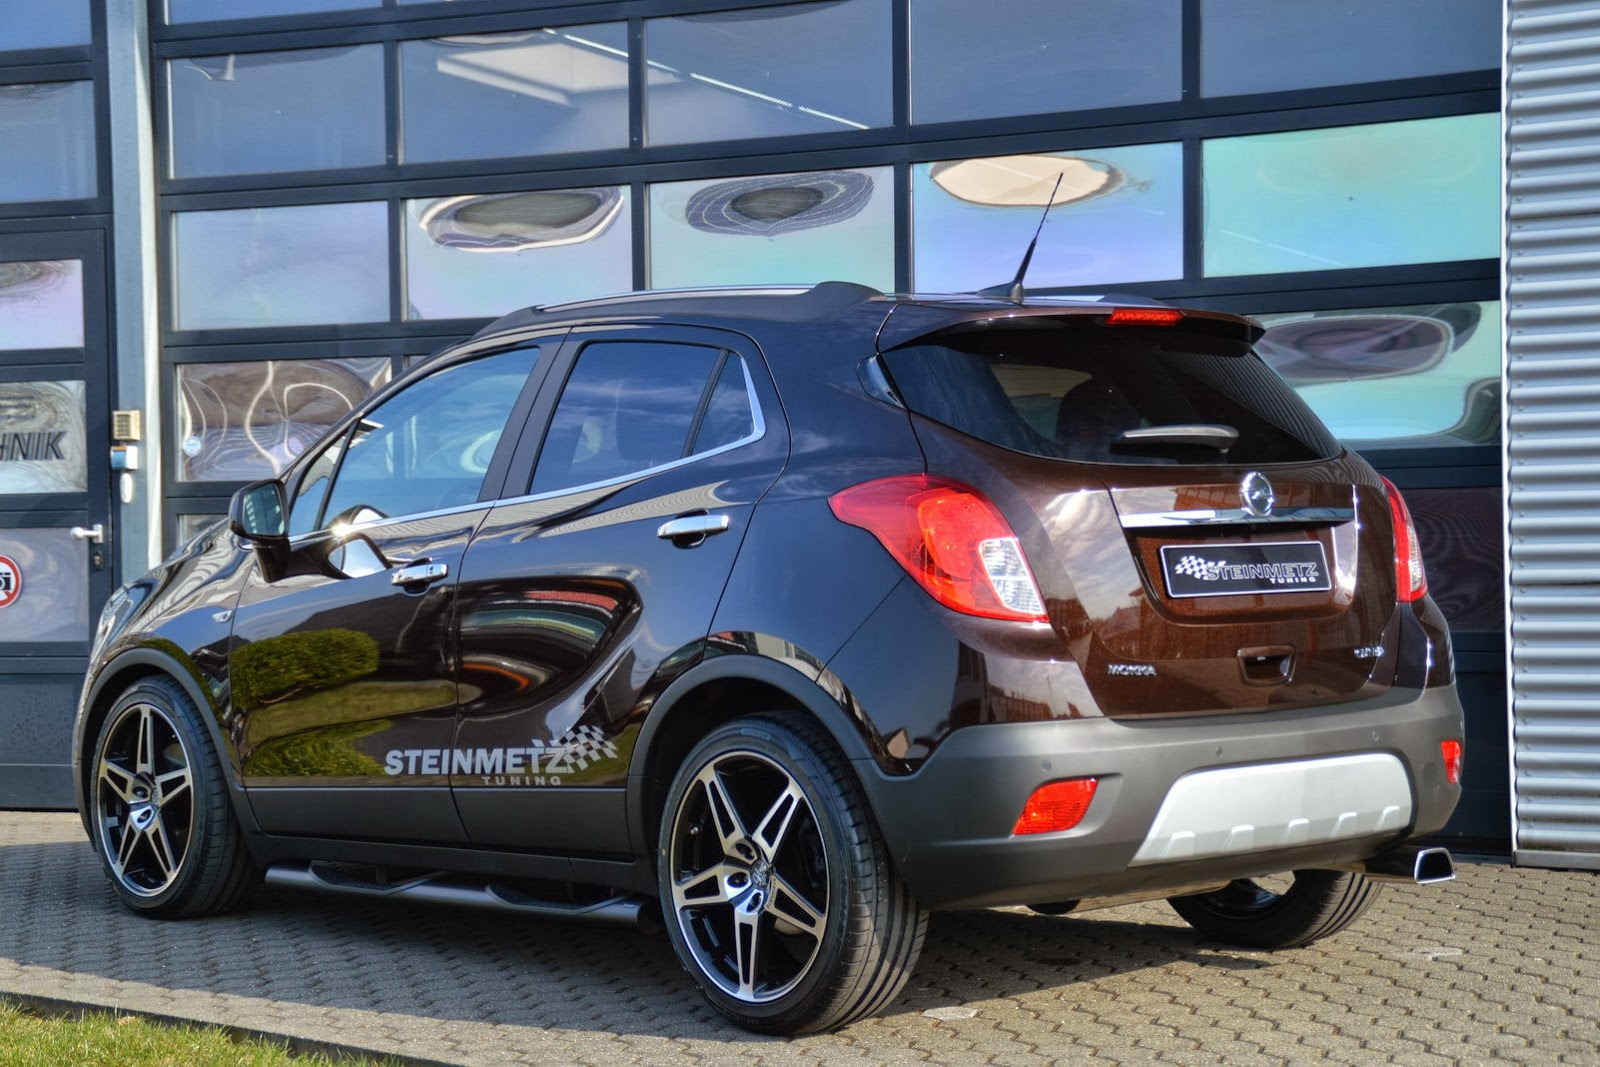 opel mokka customized by steinmetz tuning video autoevolution. Black Bedroom Furniture Sets. Home Design Ideas